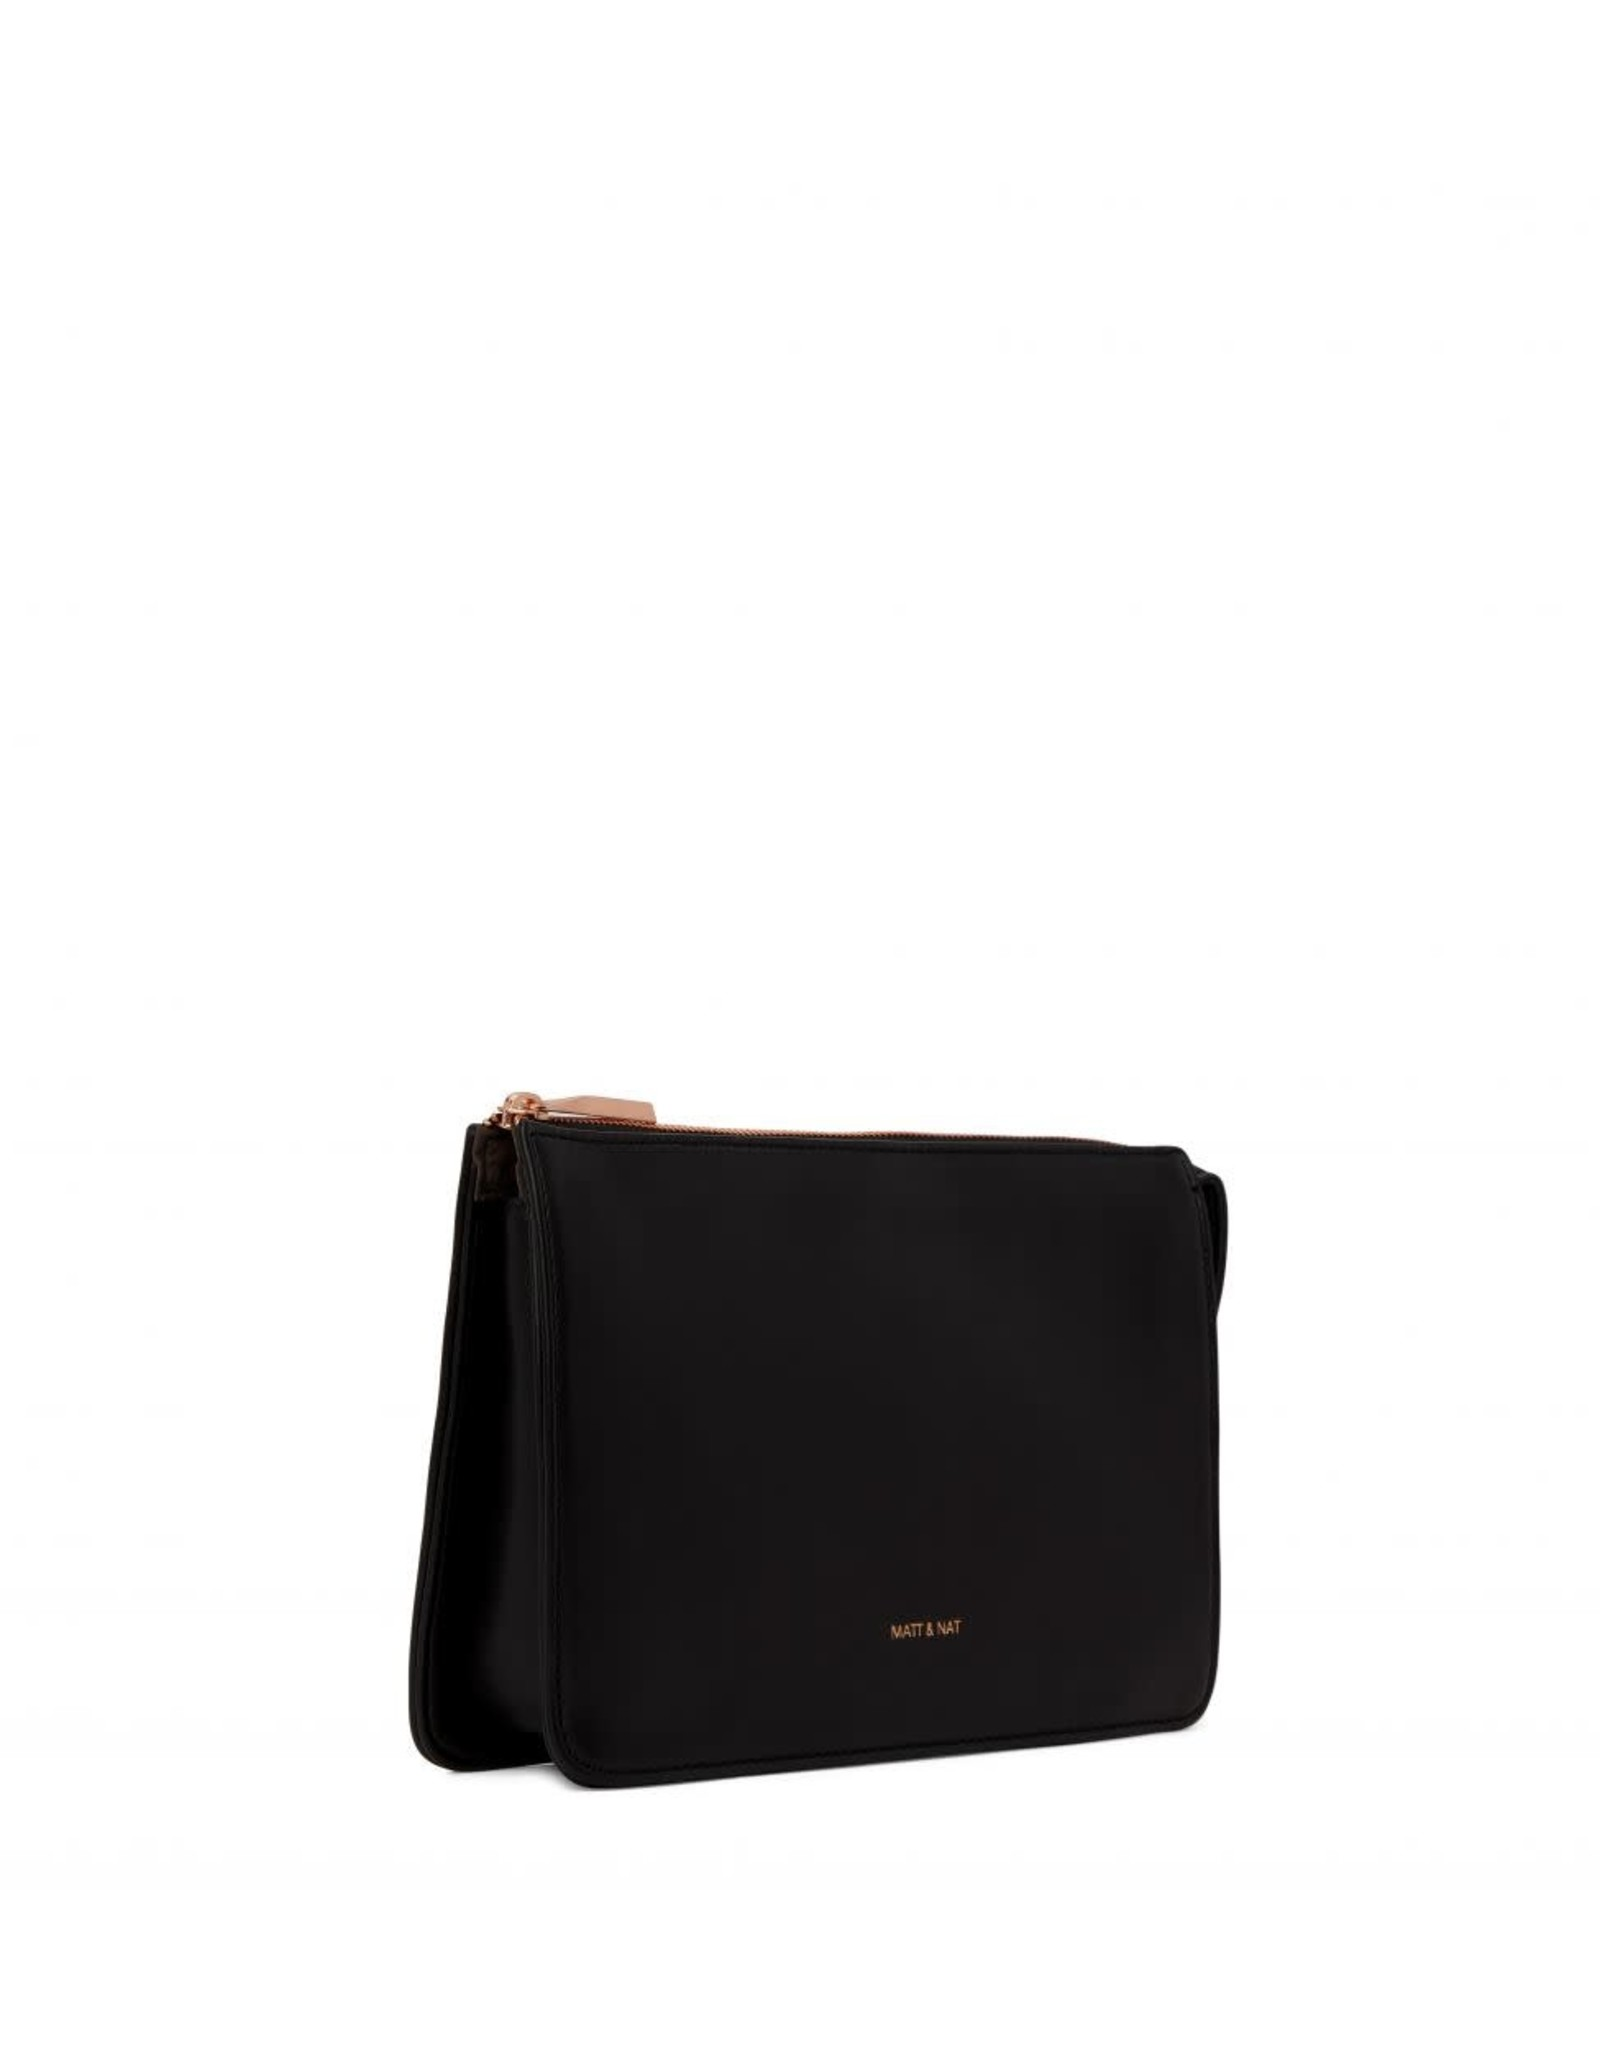 Matt & Nat Tori Crossbody/Black